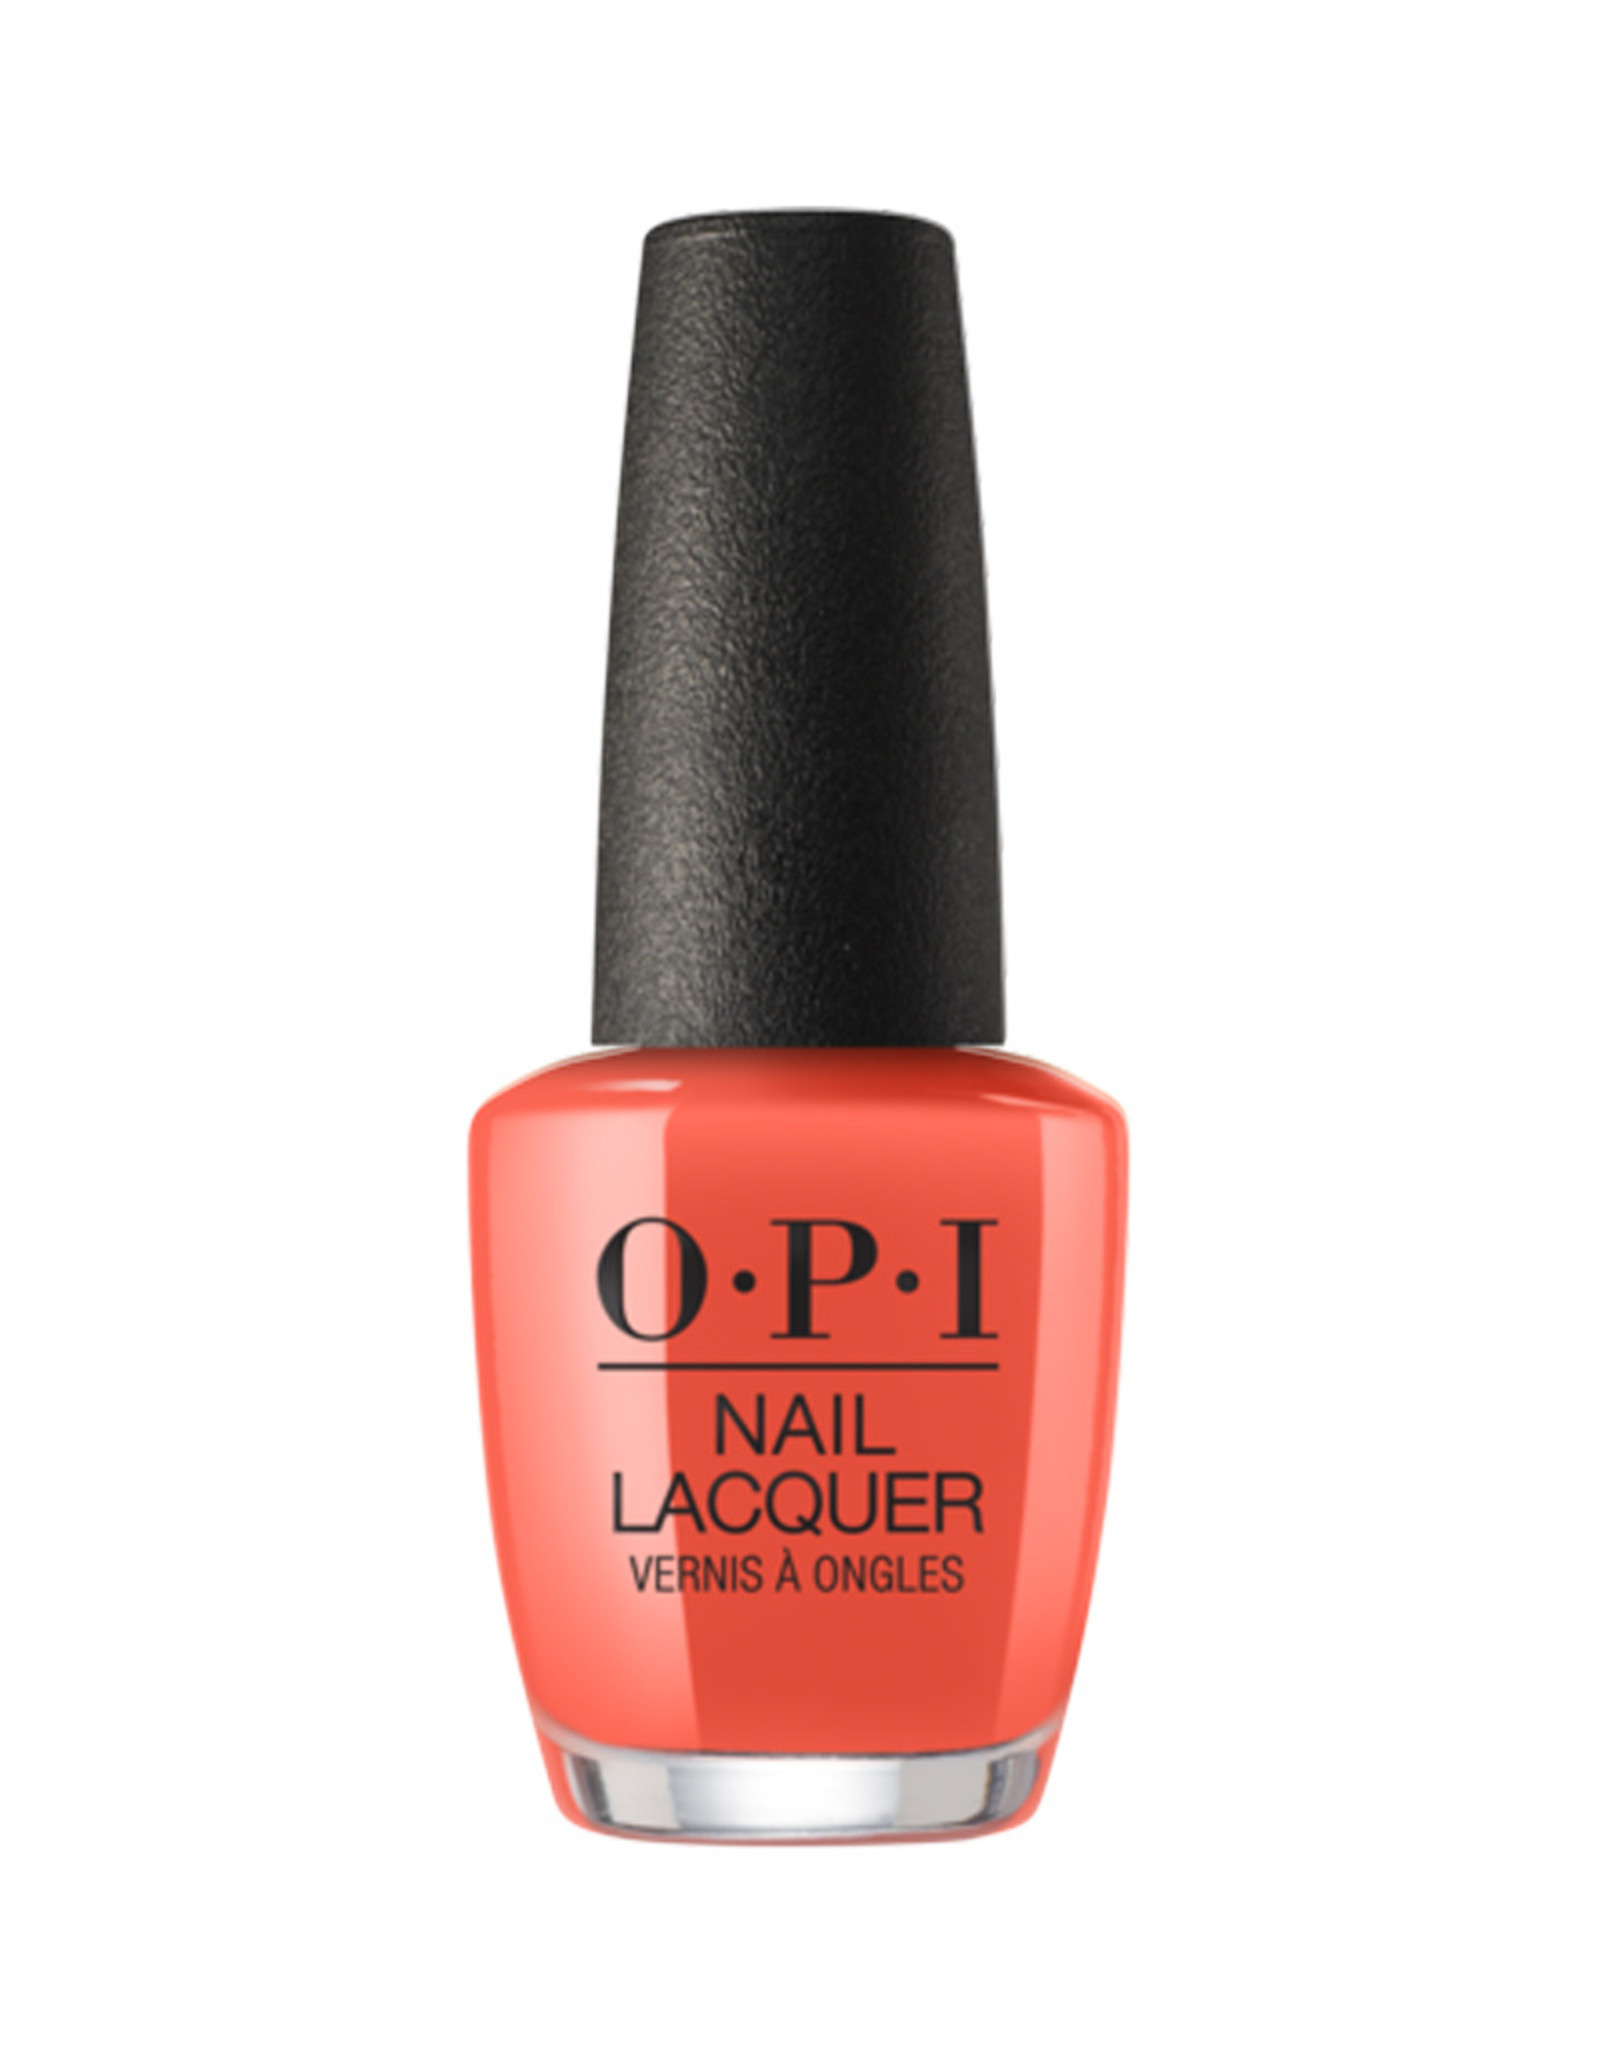 OPI NAIL LACQUER MY CHICHUAHA